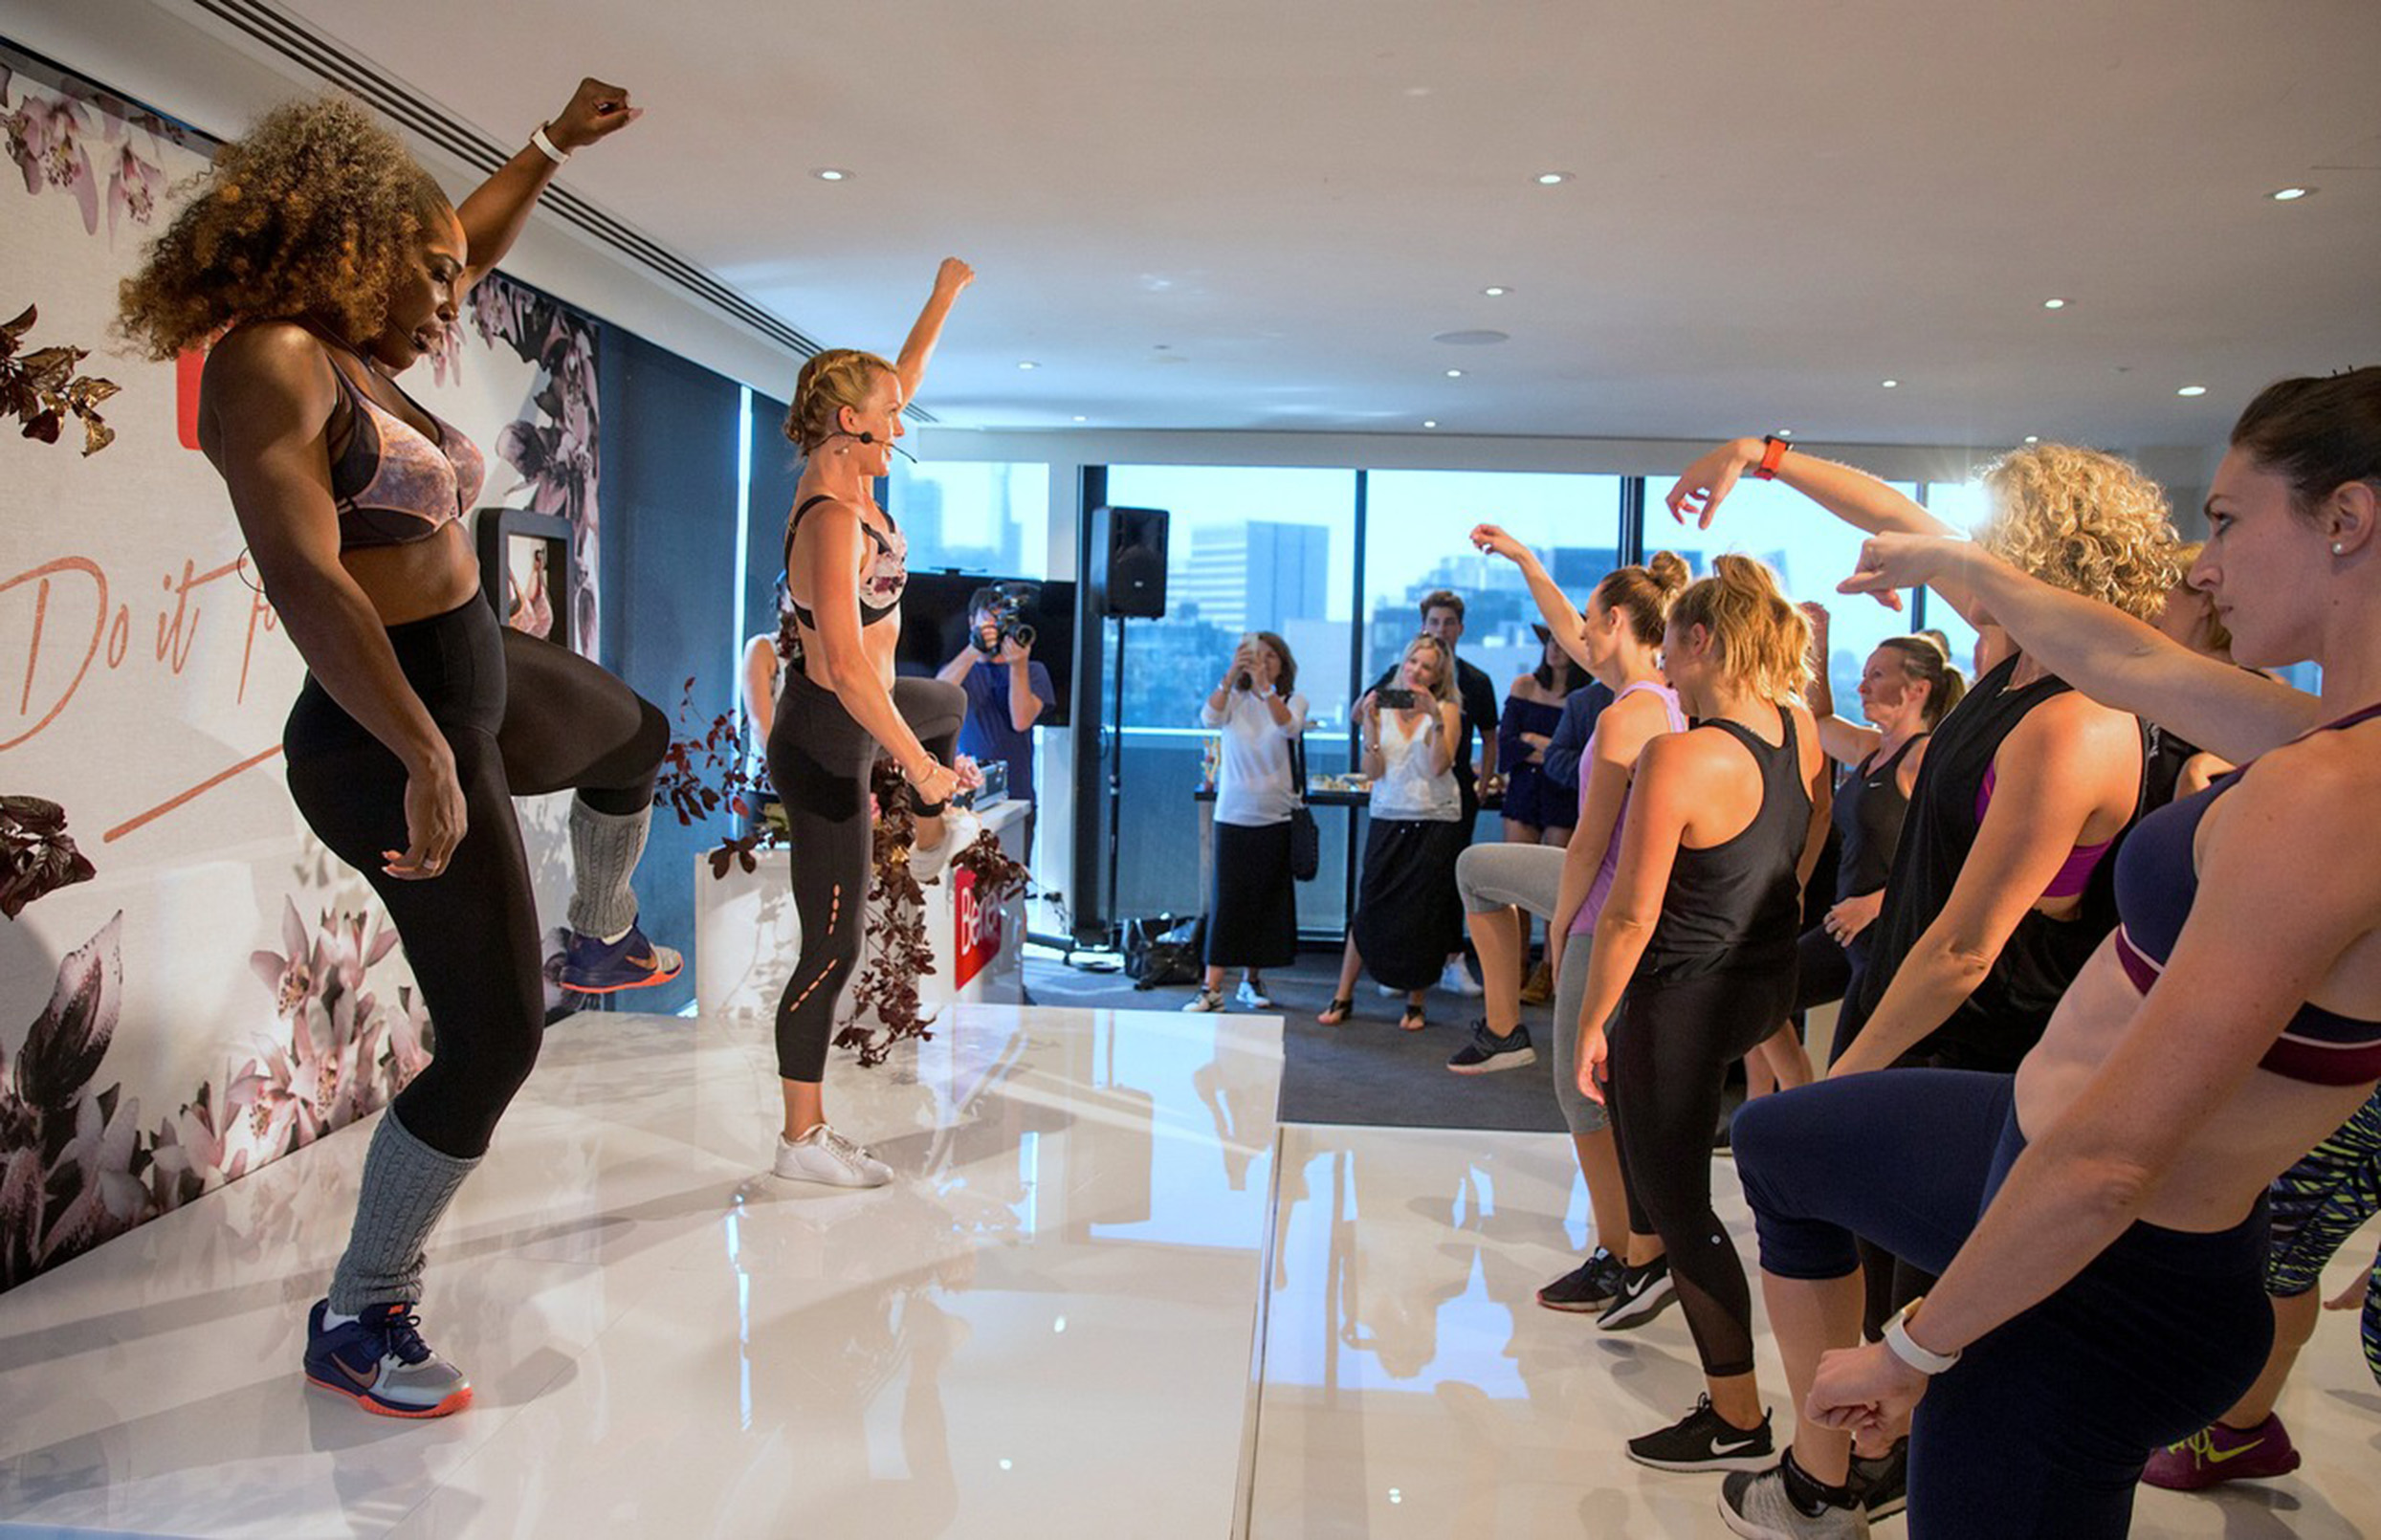 Serena Williams Leads A Dance Class While Promoting Berlei's New Sport Bra In Australia